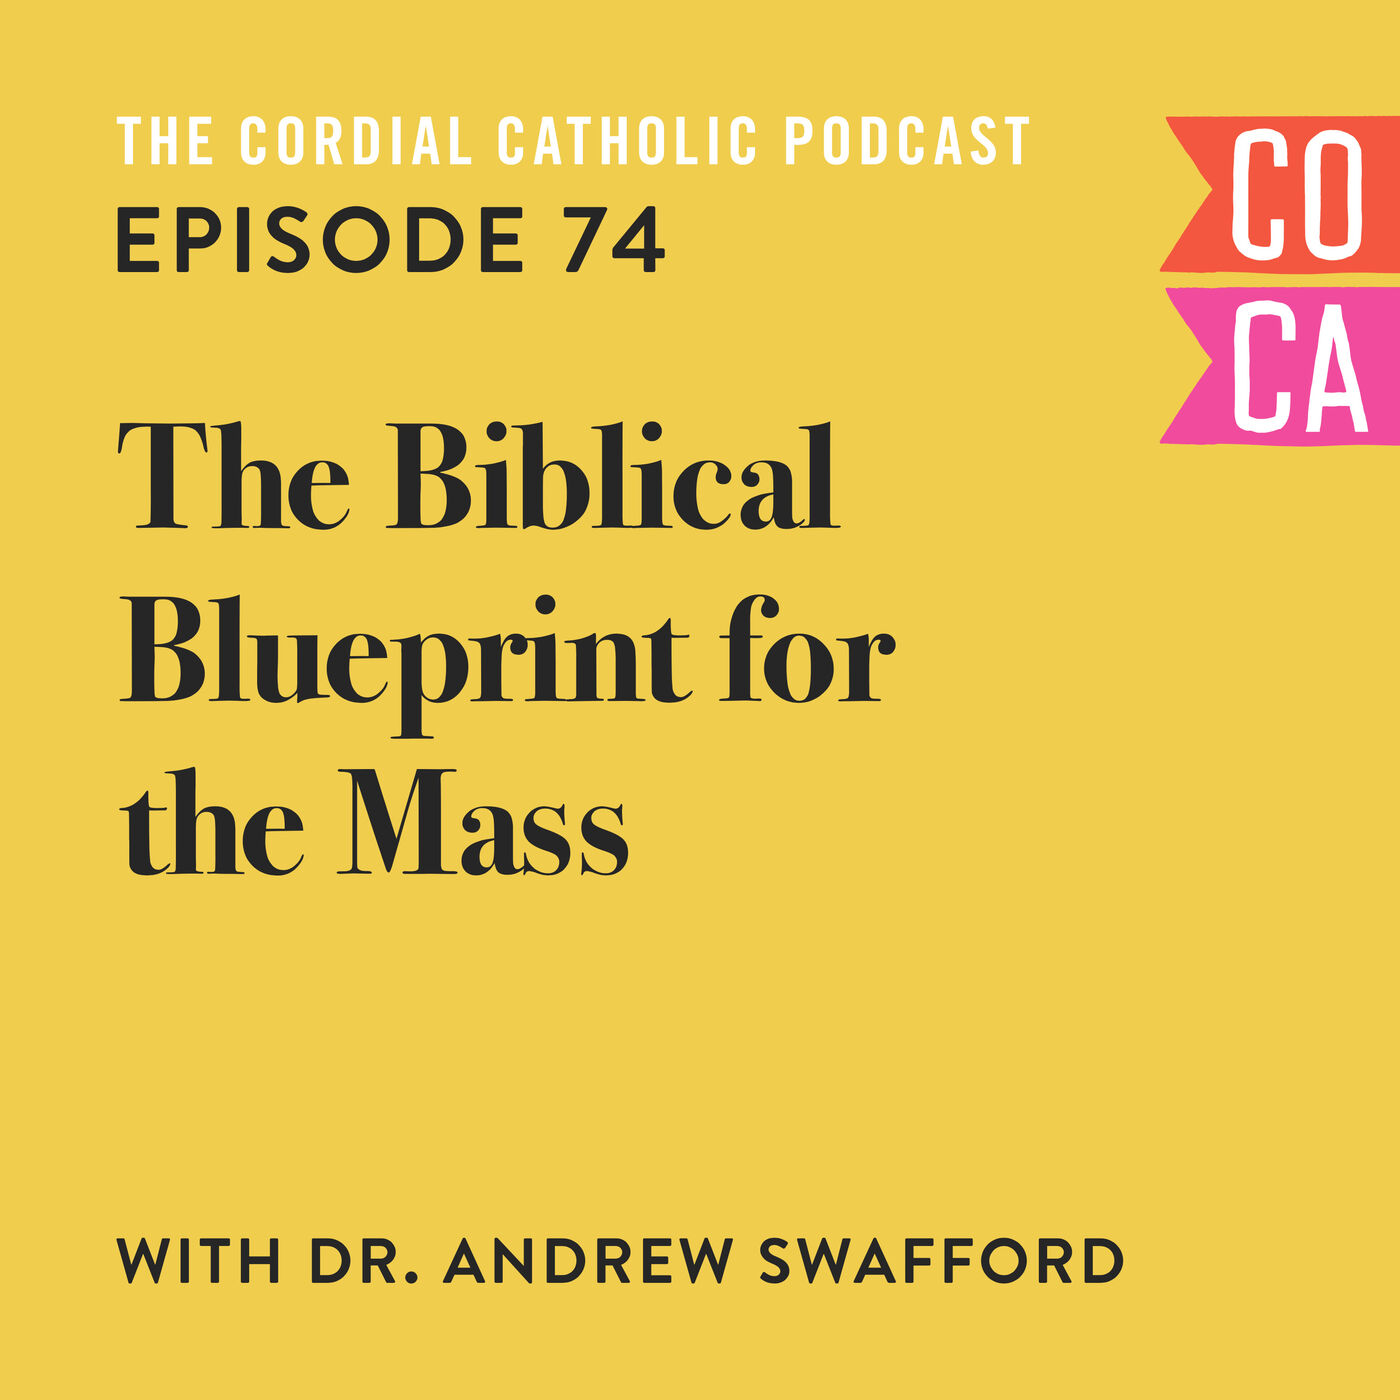 074: The Biblical Blueprint for the Mass (w/ Dr. Andrew Swafford)